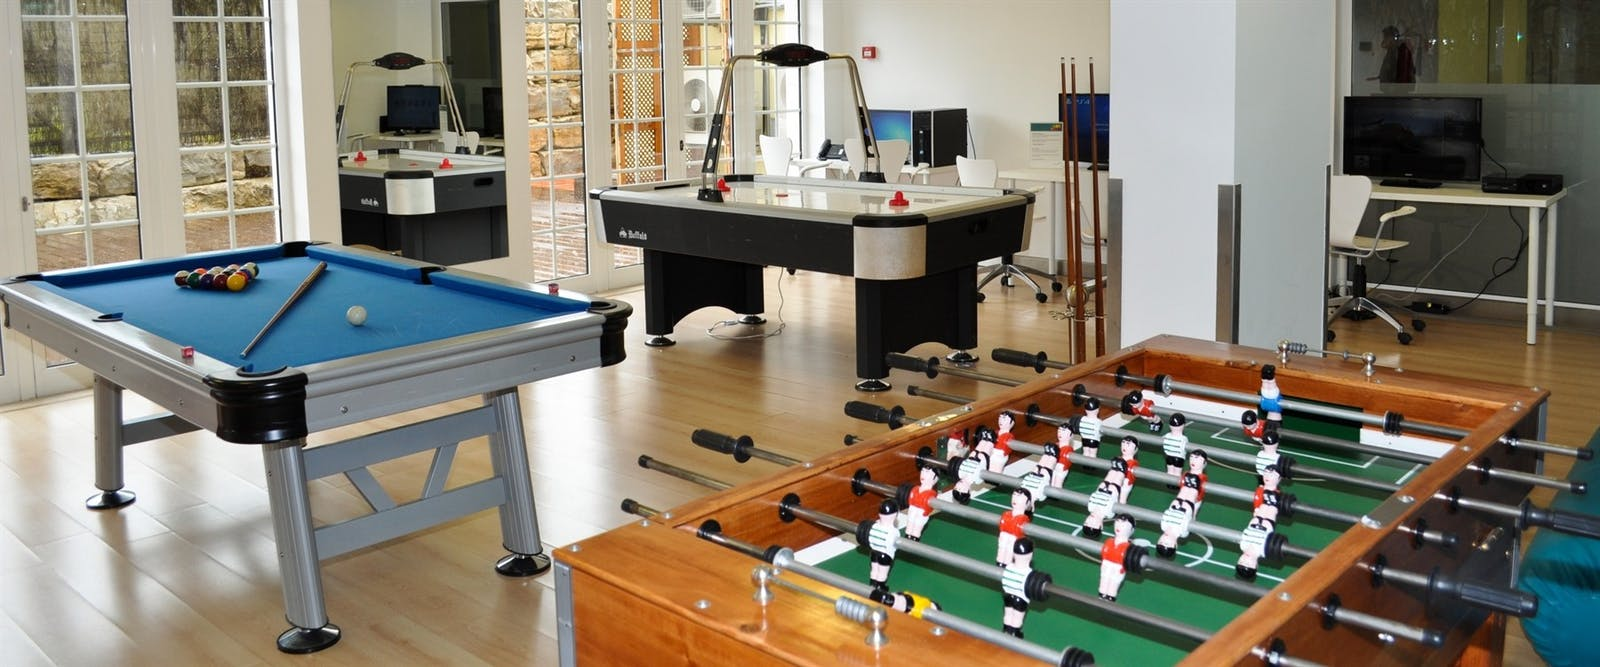 Games Room at Martinhal Quinta Family Resort, Algarve